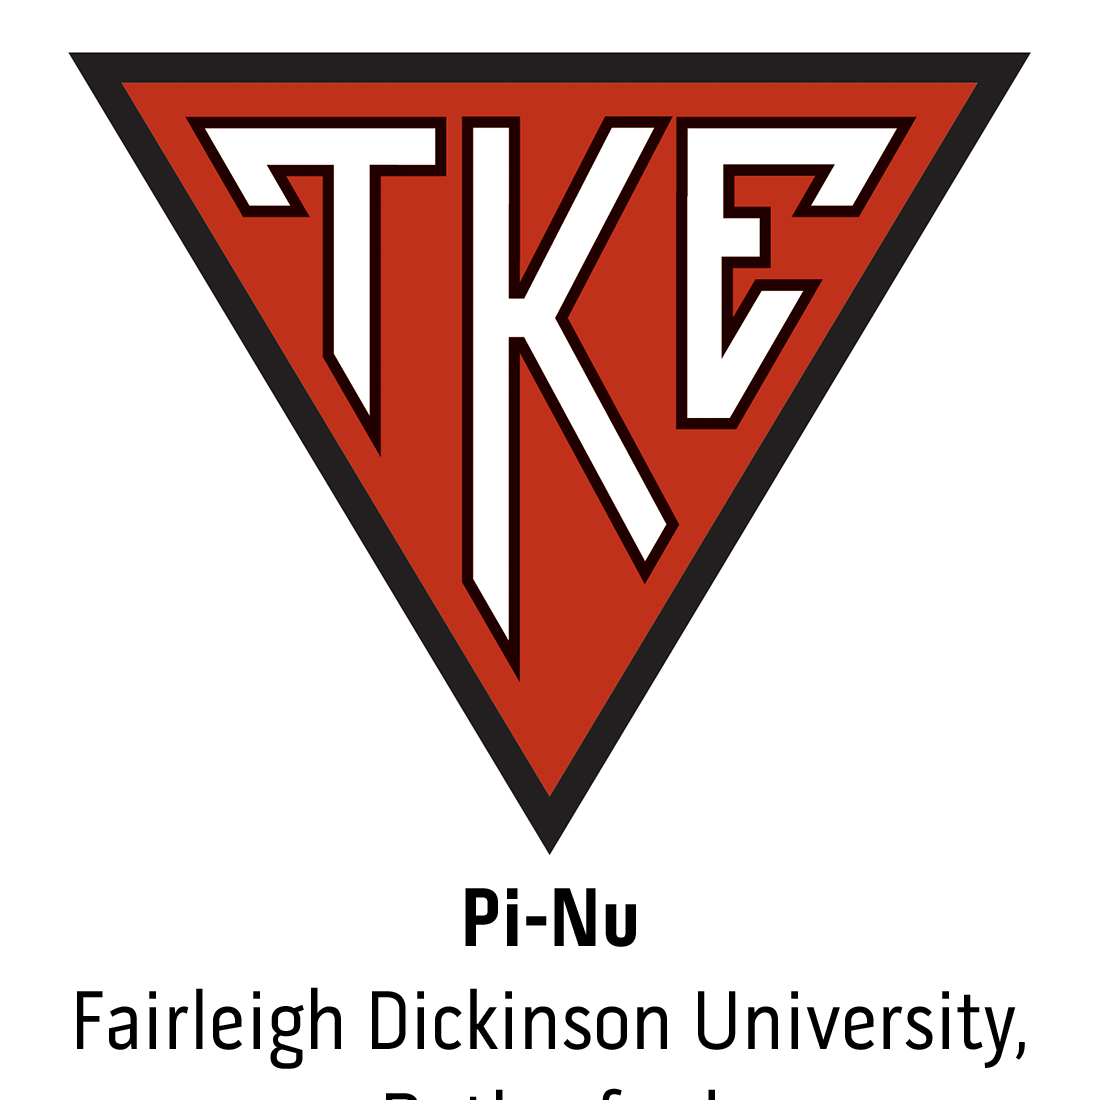 Pi-Nu Chapter at Fairleigh Dickinson University, Rutherford